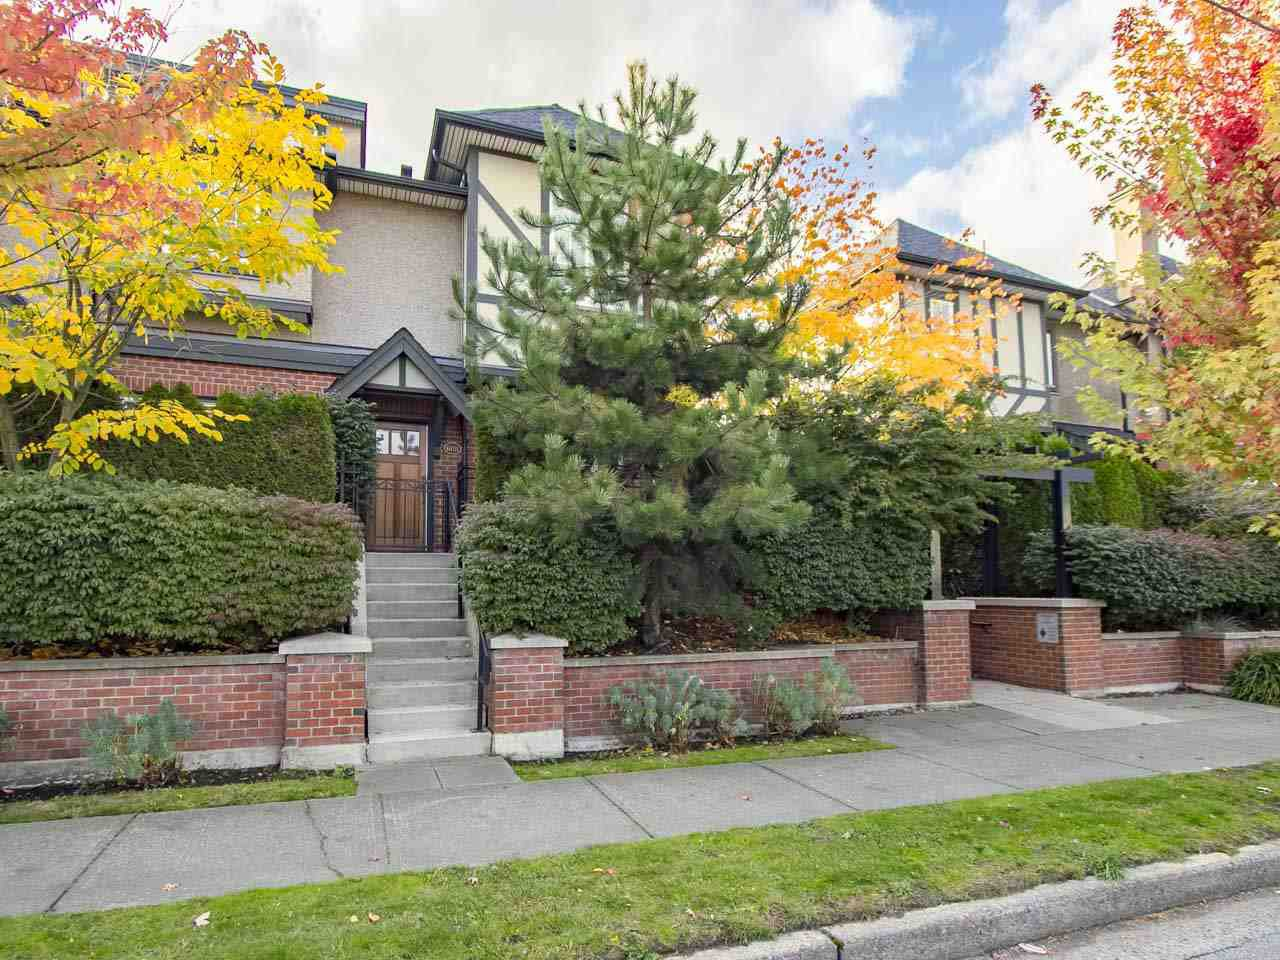 Main Photo: 6151 Oak St, in Vancouver: South Granville Townhouse for sale (Vancouver West)  : MLS®# R2115728